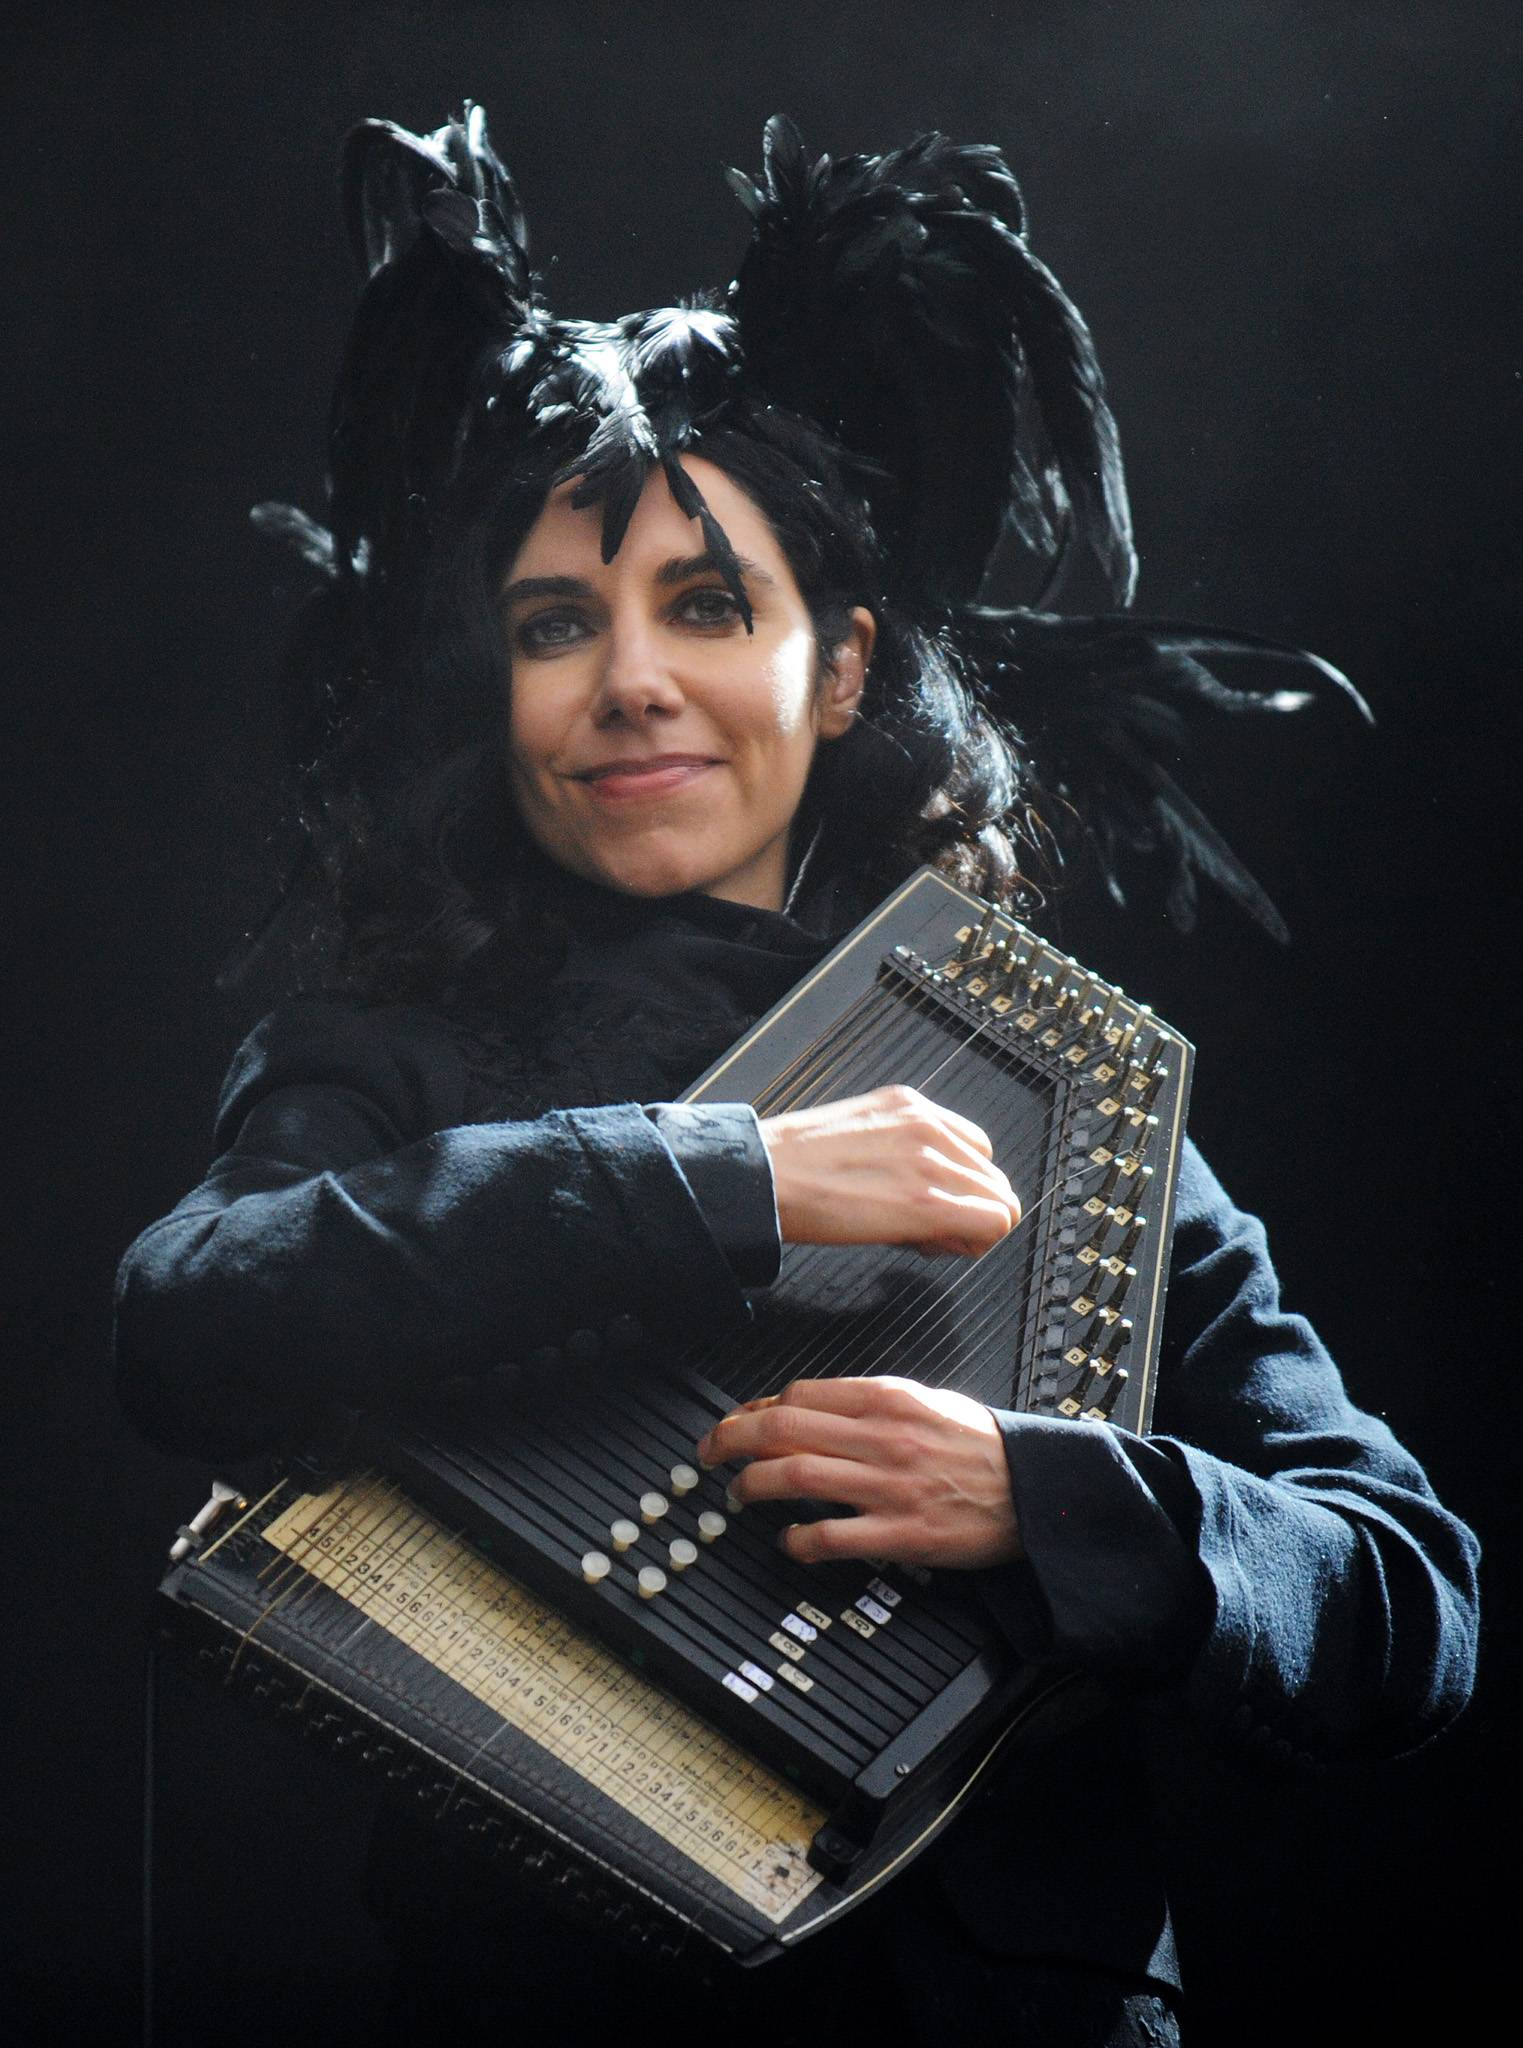 PJ Harvey - A Place Called Home